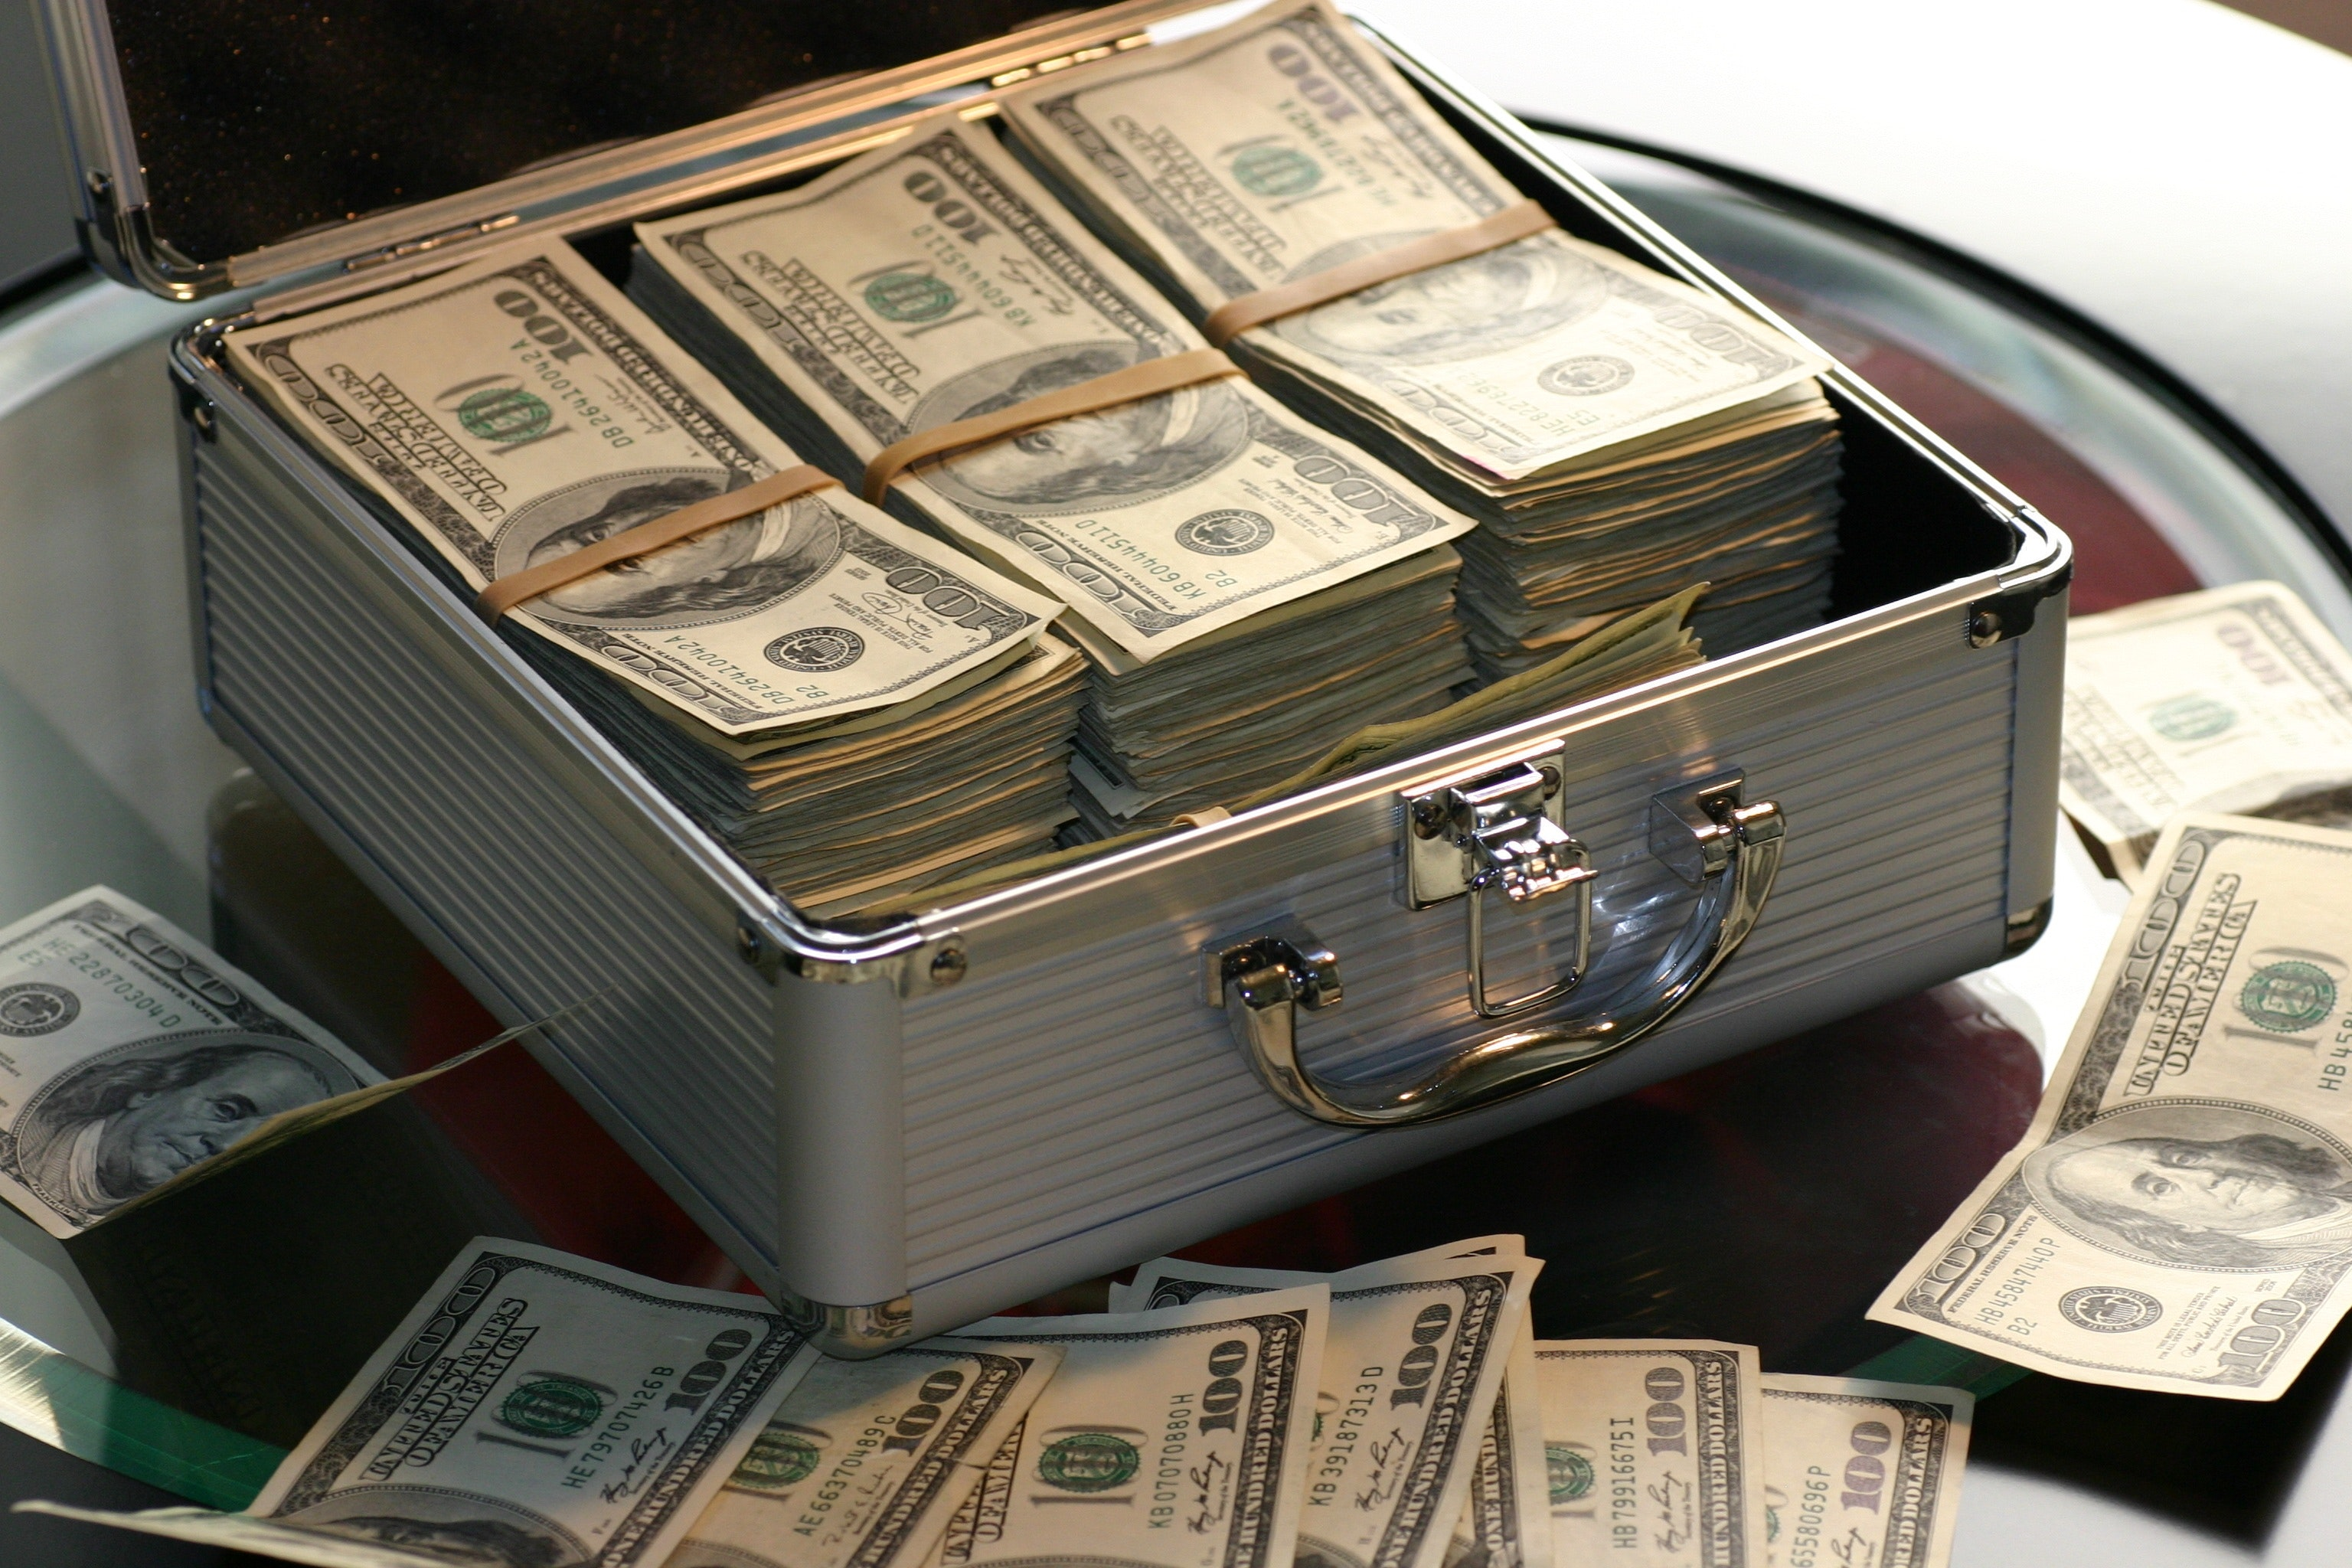 3 stacks of $100 bills wrapped in rubber bands placed in a silver briefcase.